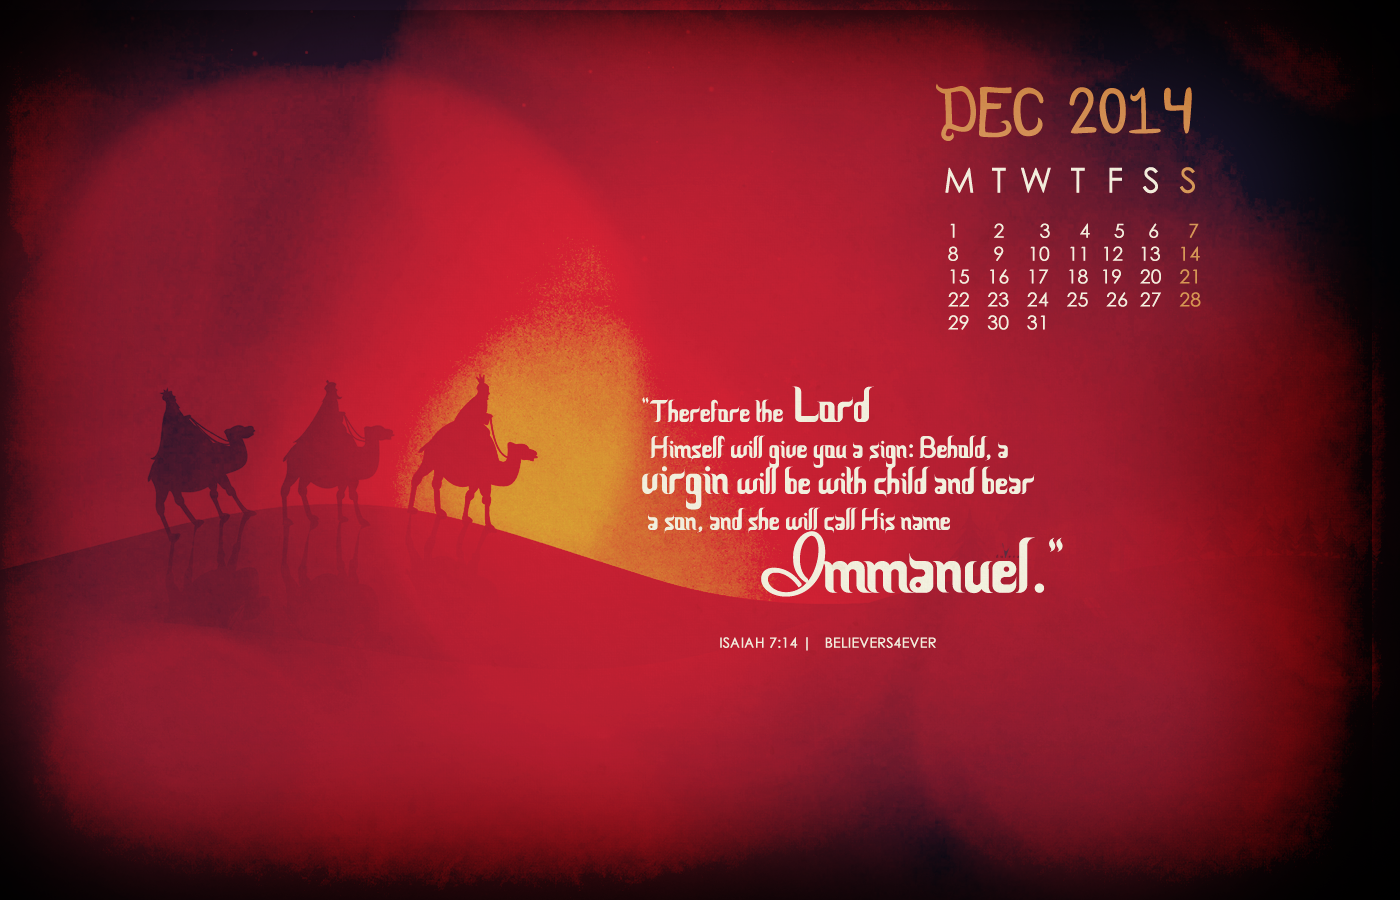 Immanuel Christian Christmas wallpaper